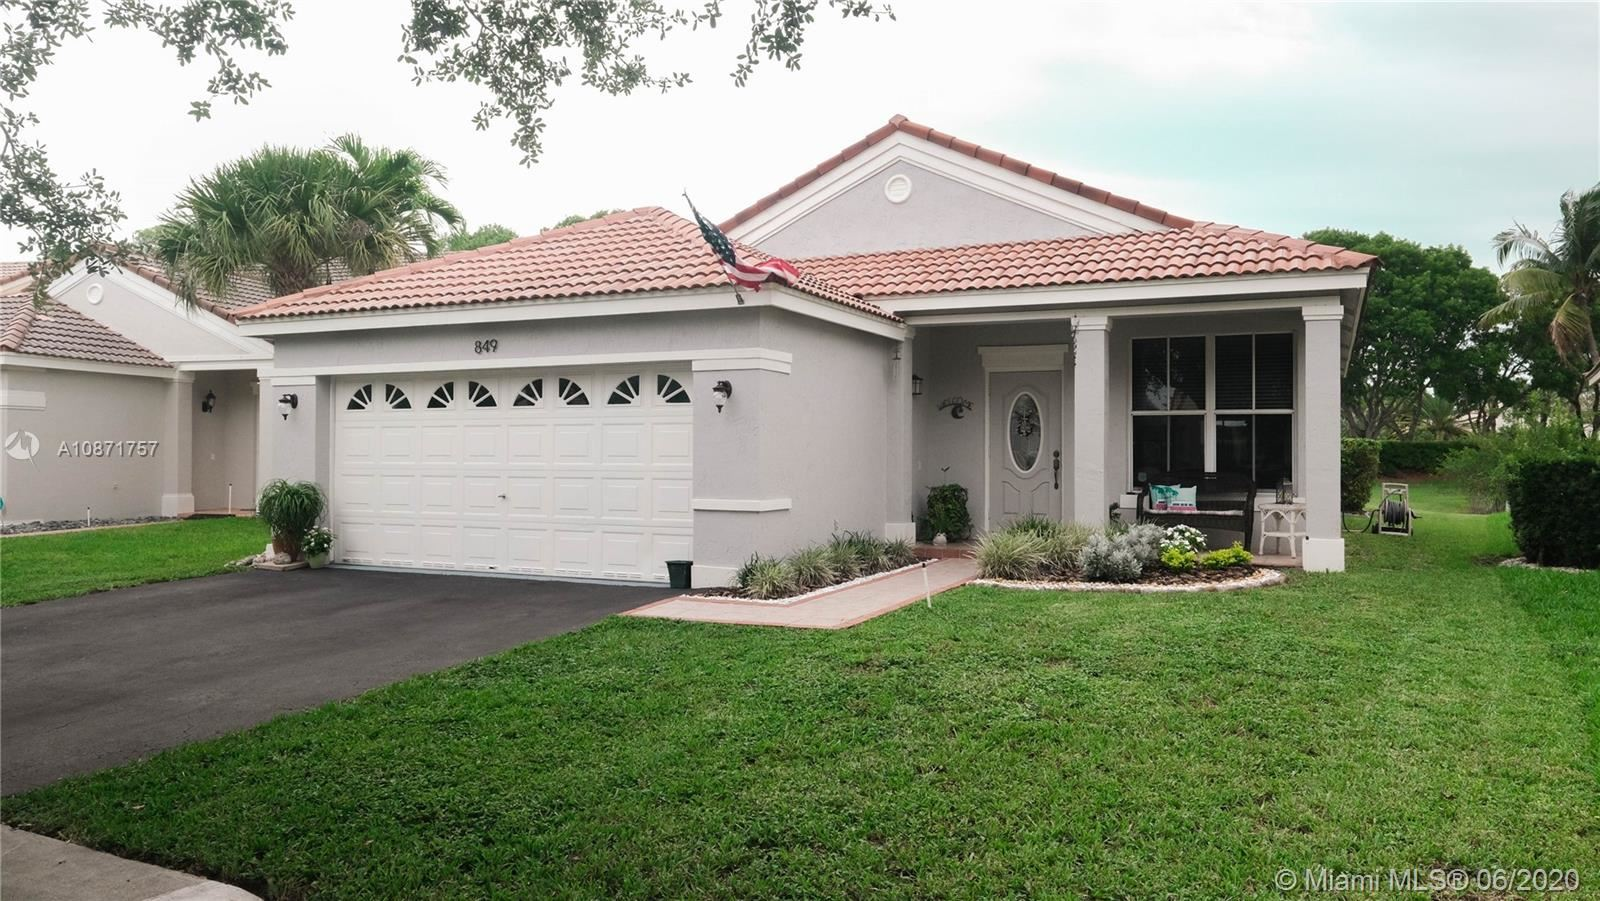 849 Sand Creek Circle, Weston, FL 33327 - #: A10871757